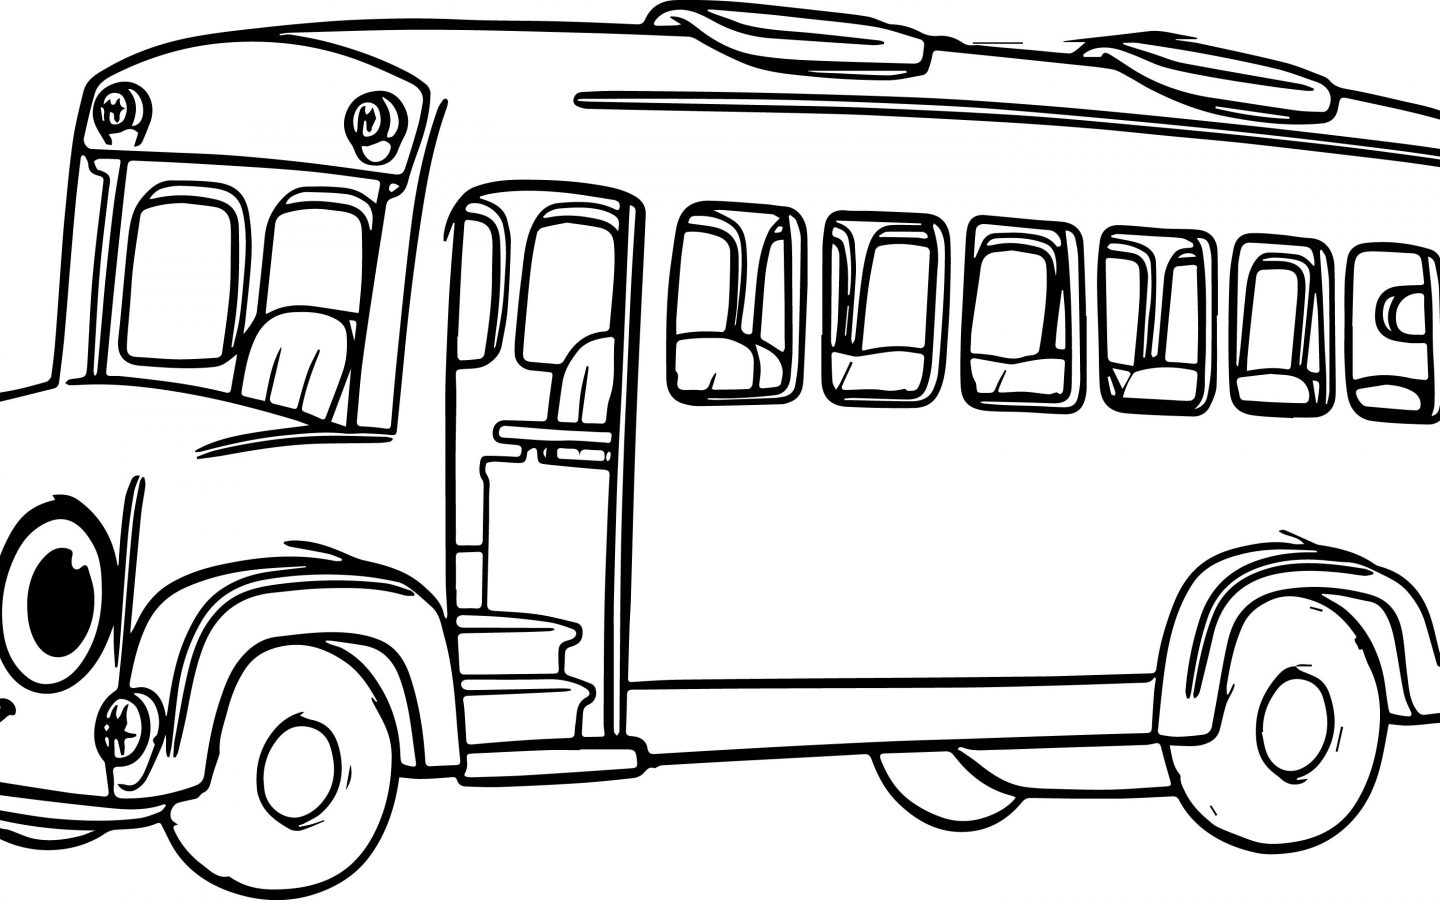 school bus drawing how to draw school busses easy drawing tutorial for kids bus school drawing